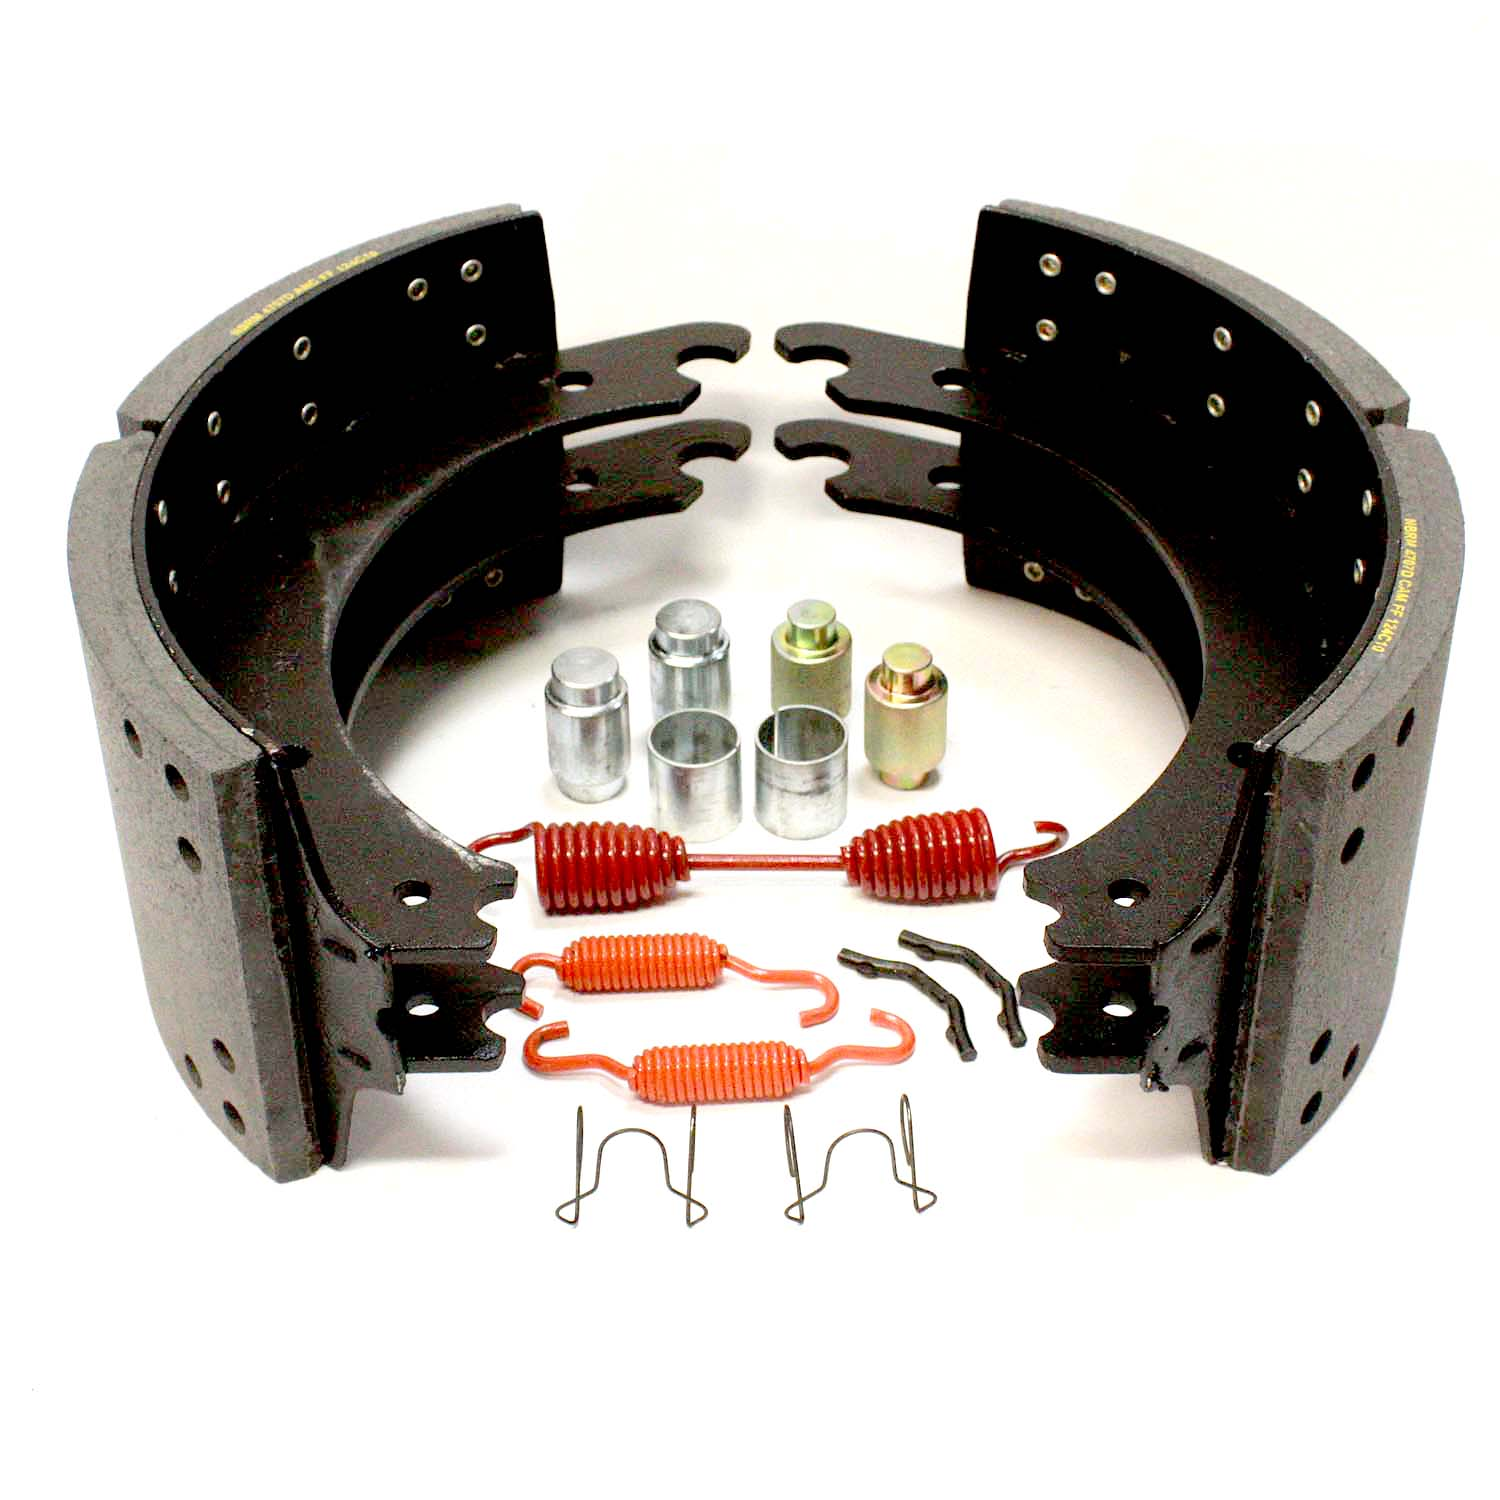 L4524Q-QK1HD Box of Brakes 23K